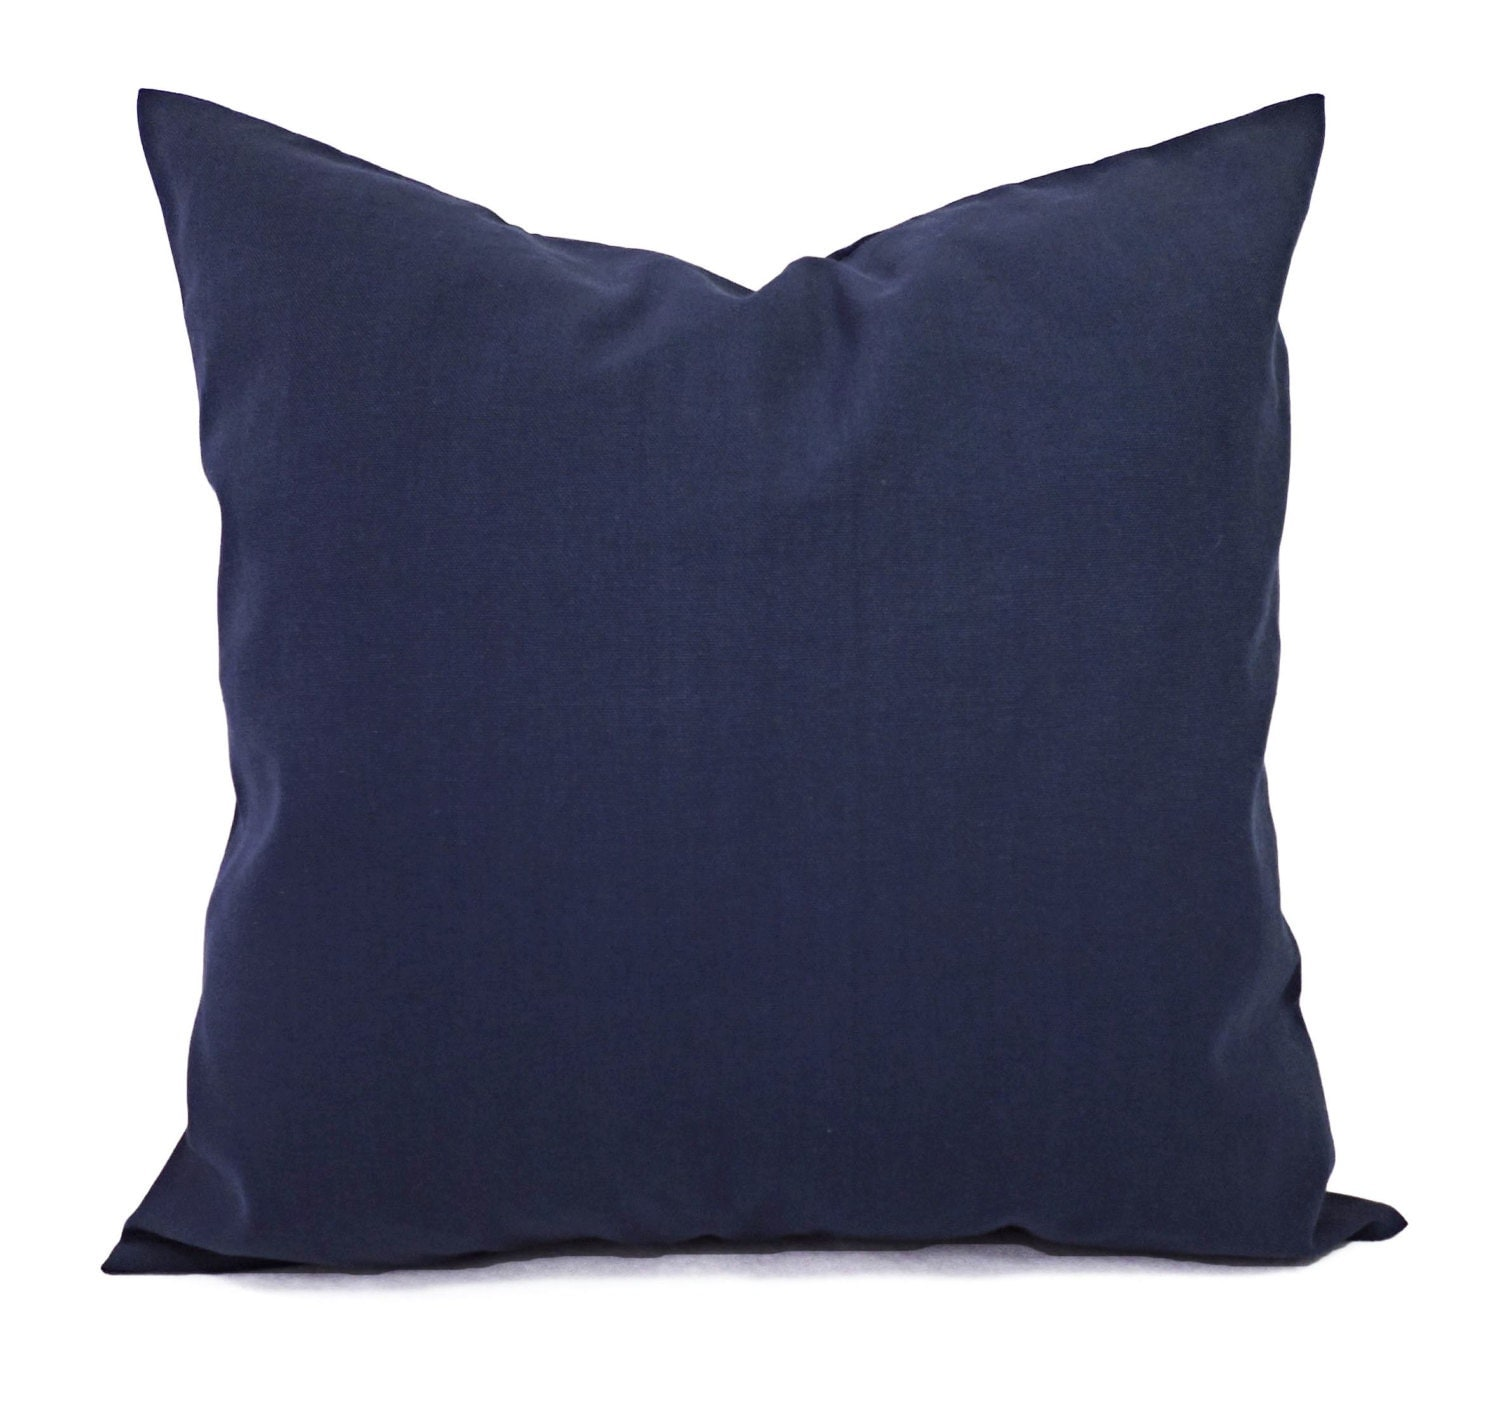 Throw Pillows For Navy Blue Couch : Solid Pillow Covers Navy Couch Pillow Covers Two Navy